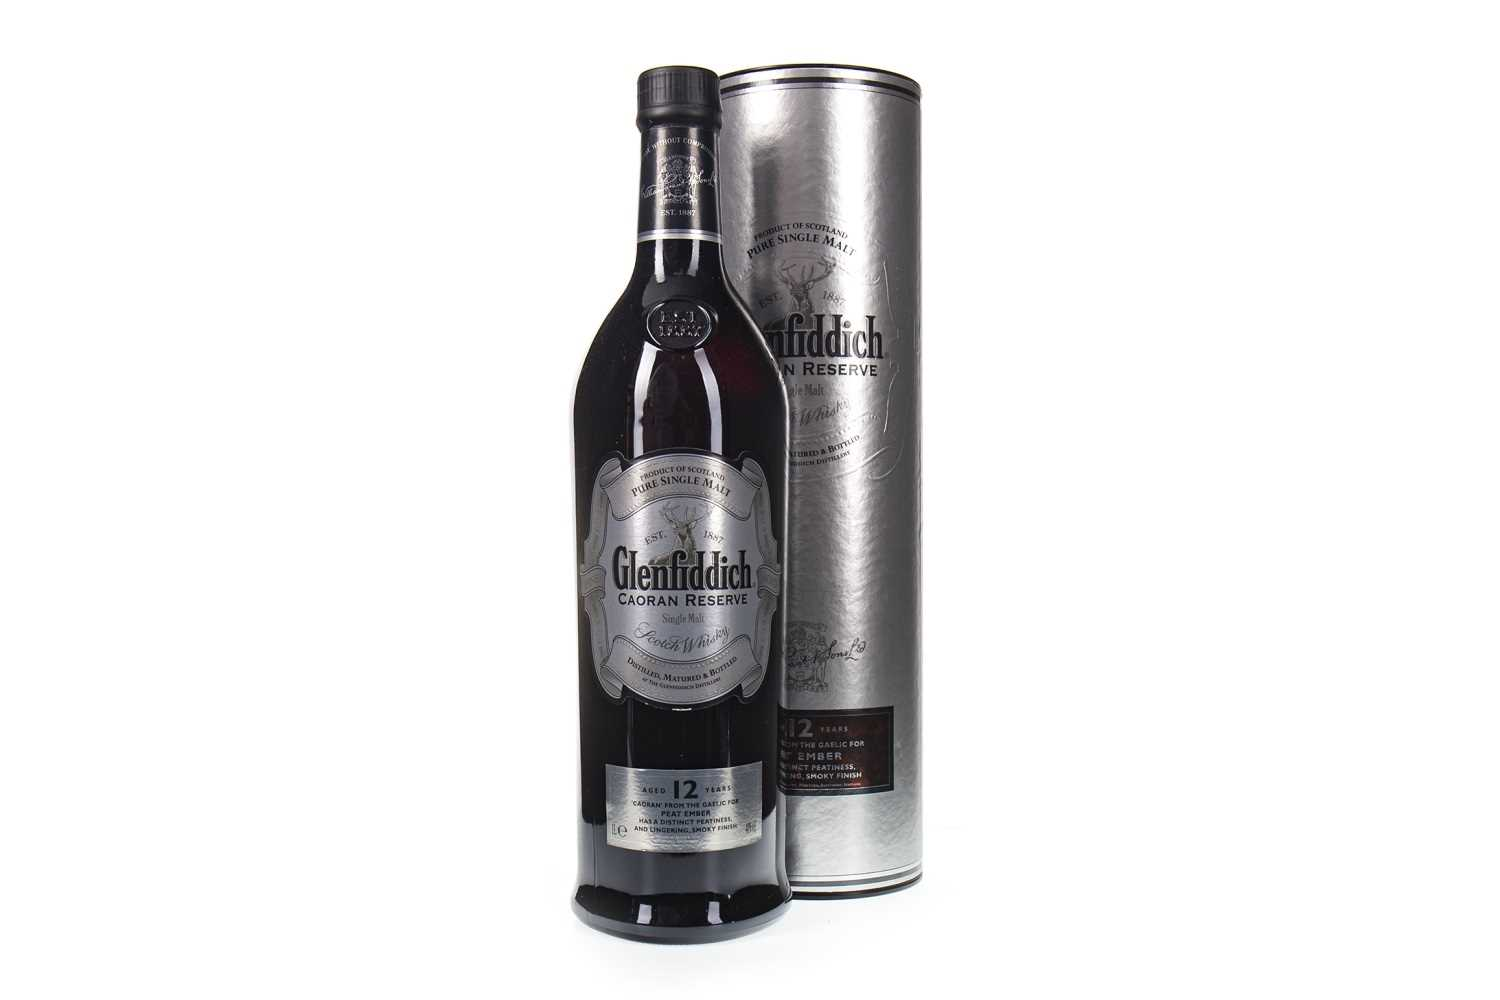 Lot 316-GLENFIDDICH CAORAN RESERVE AGED 12 YEARS